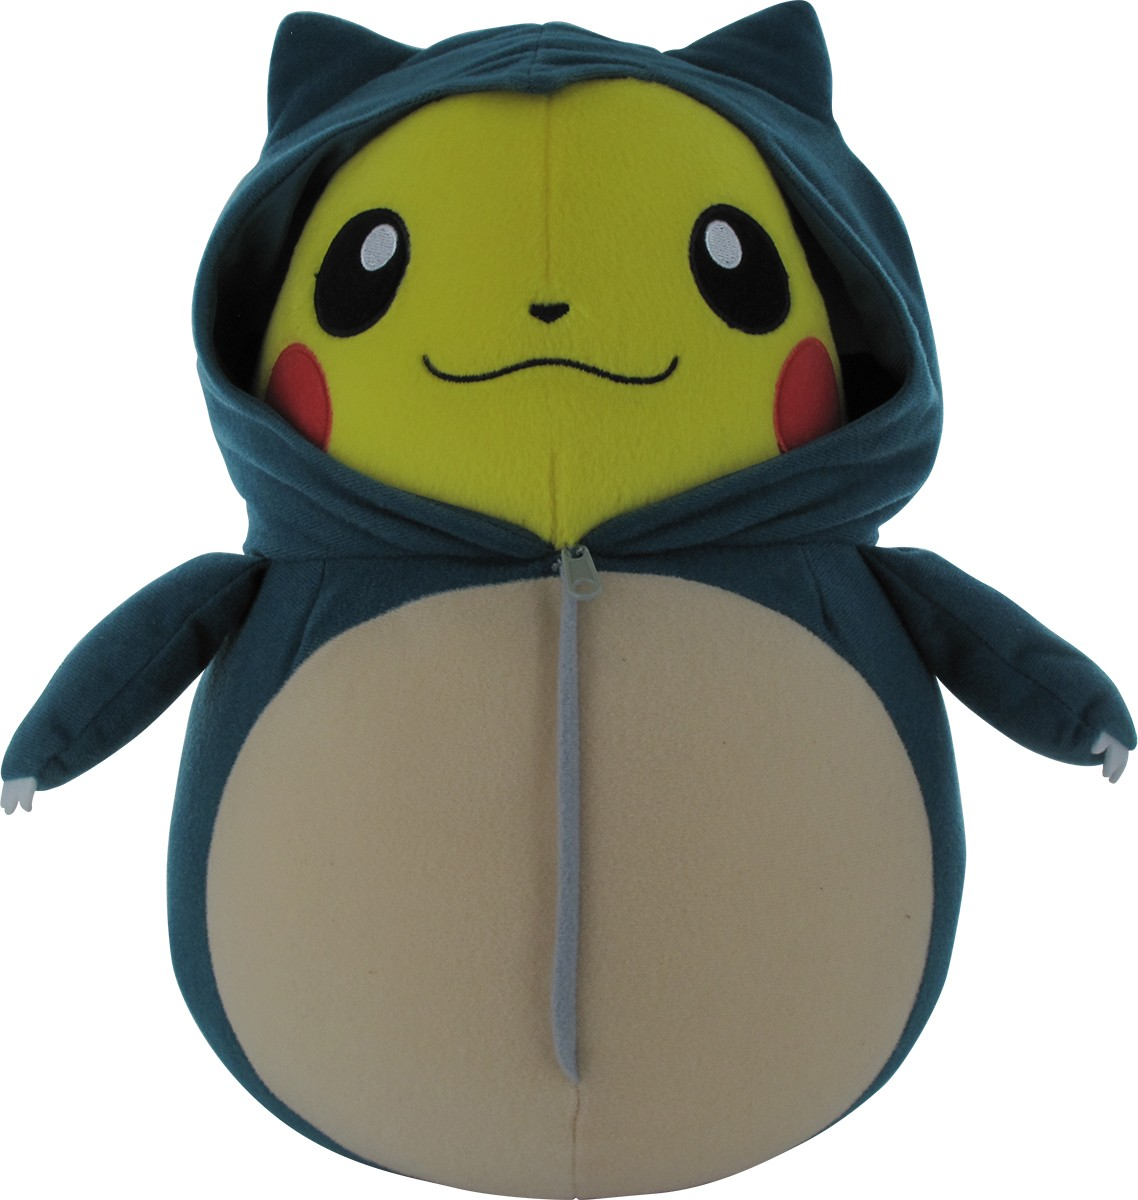 Plush Pokemon Xyz Pikachu Snorlax